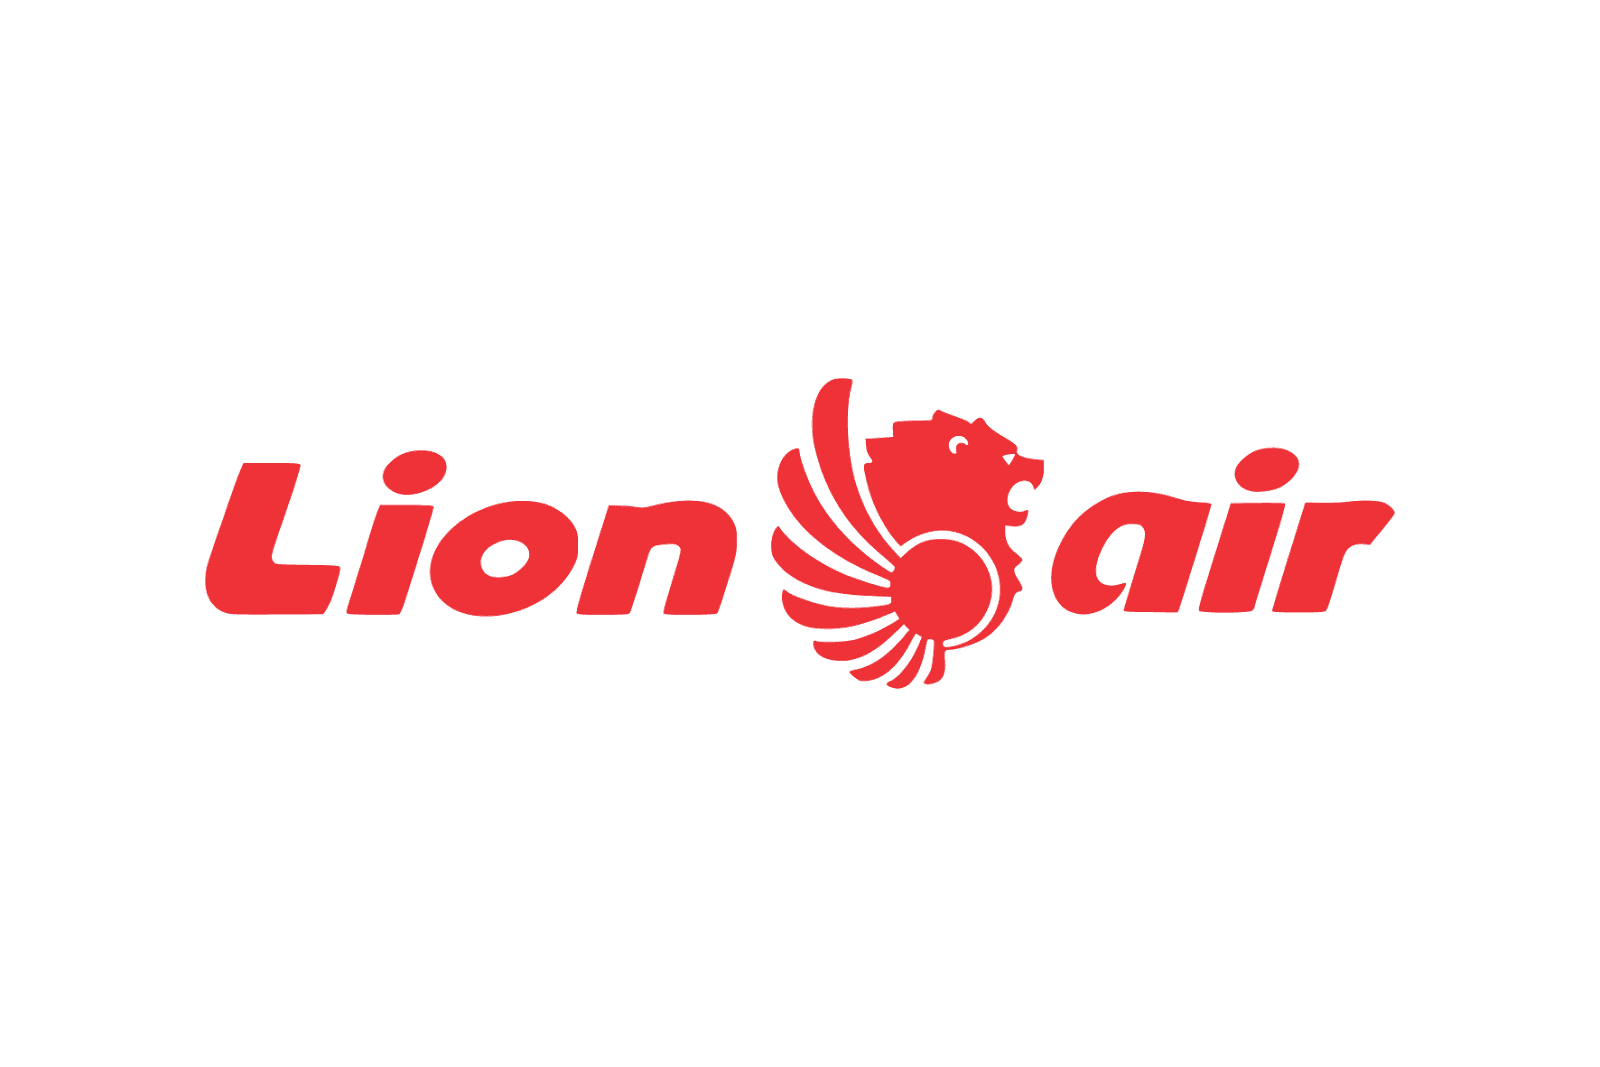 Lion Air Indonesia Kupon & Diskon 2018